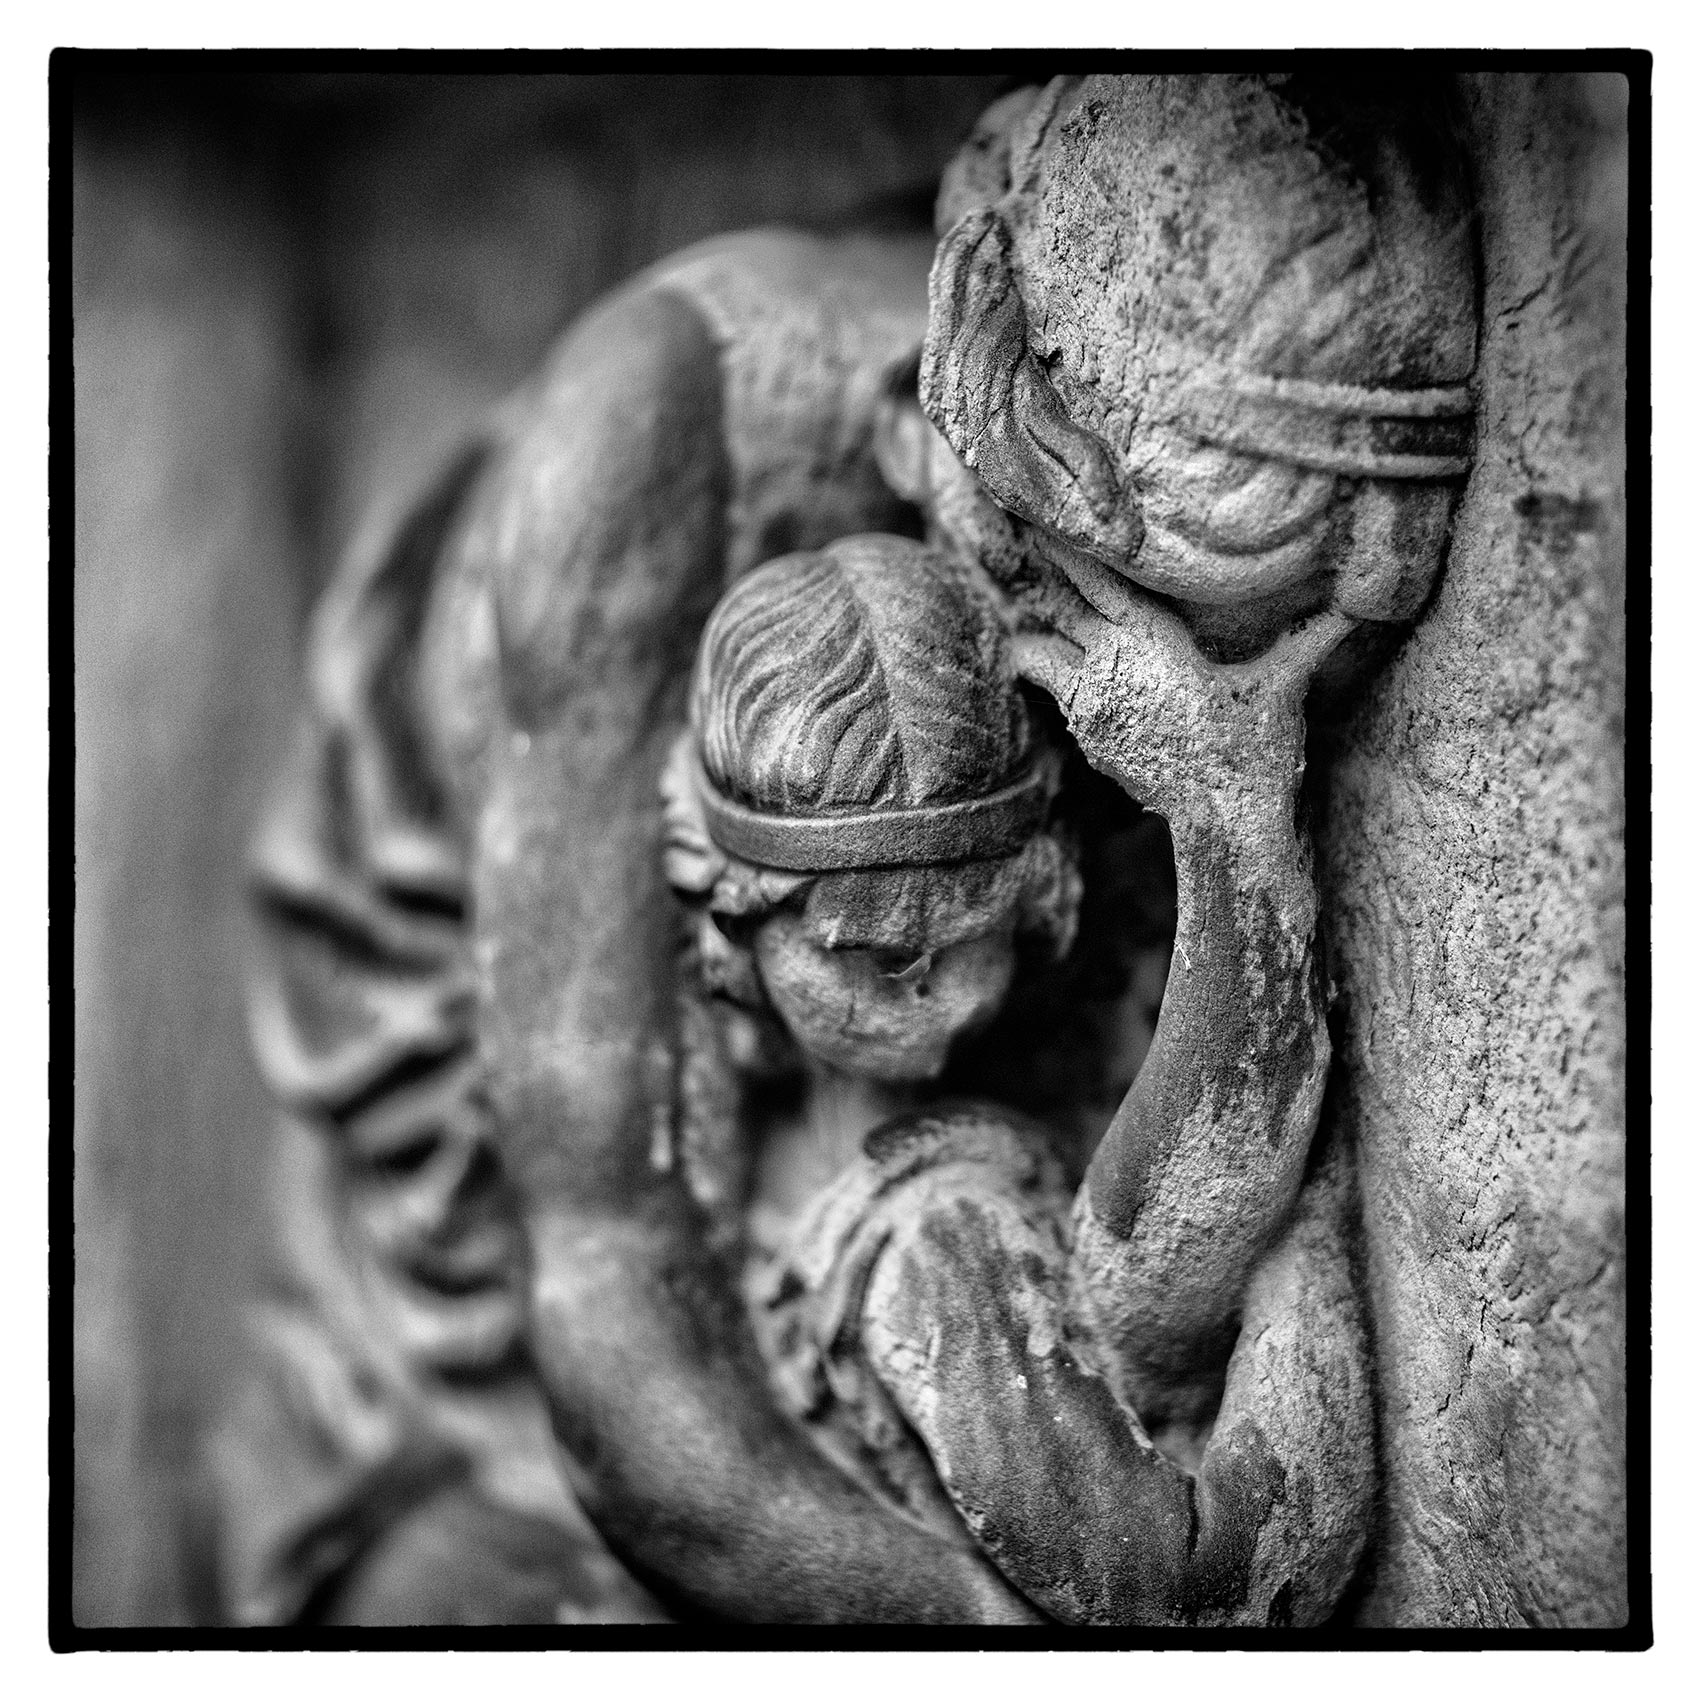 a stone sculpture of-crying mother and baby at St. James Cemetery in Toronto